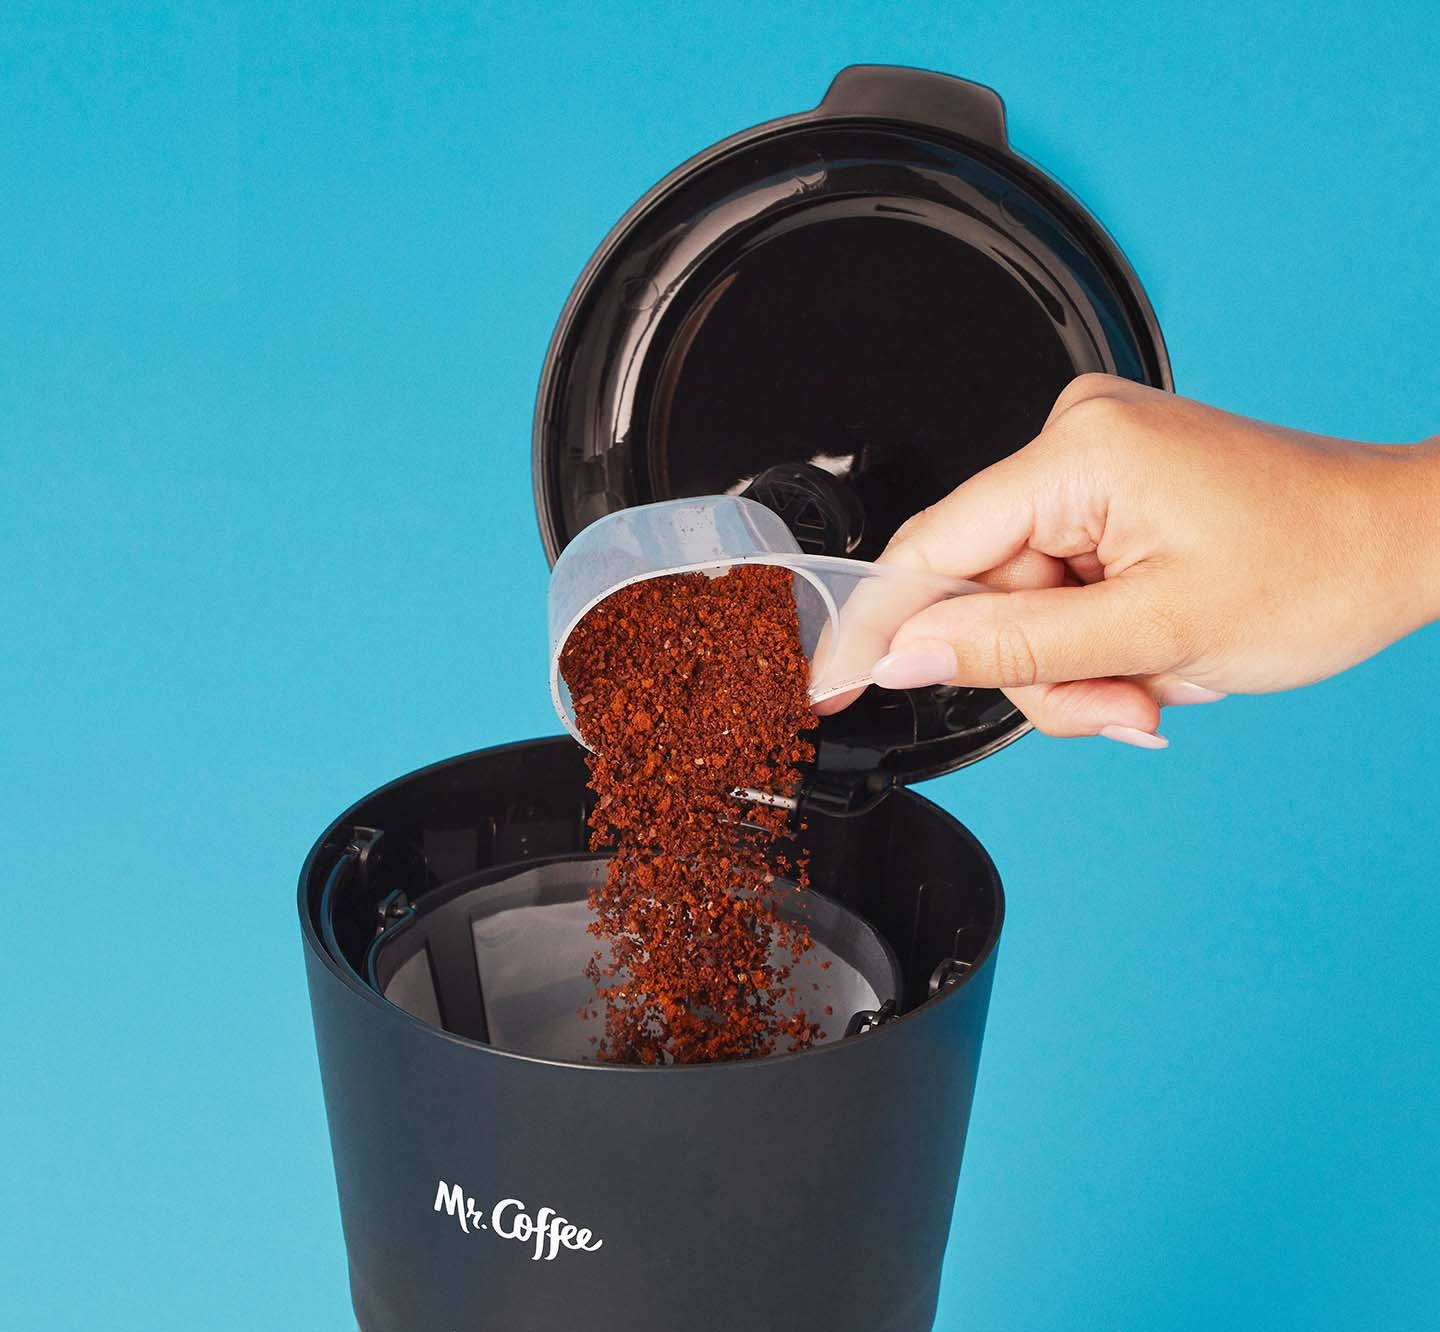 Putting coffee grounds into a coffeemaker